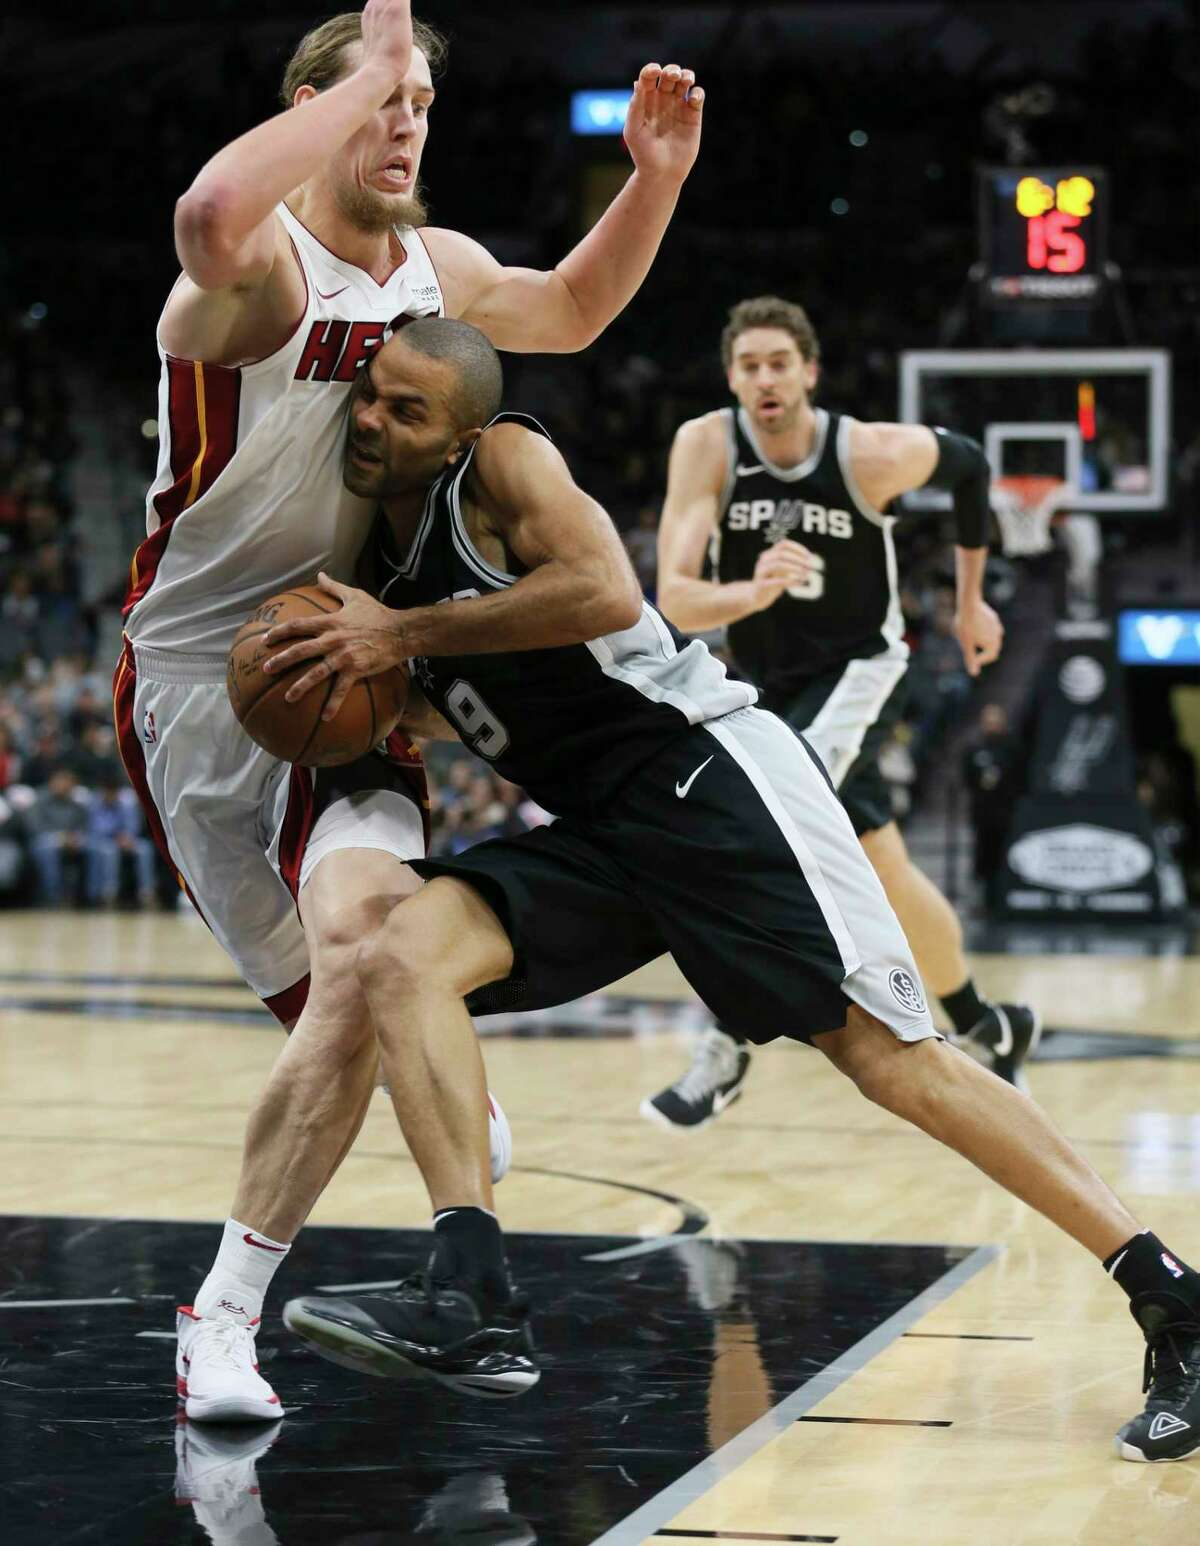 Spurs' Tony Parker (09) drives with the ball against Miami Heat's Kelly Olynyk (09) at the AT&T Center on Wednesday, Dec. 6, 2017.